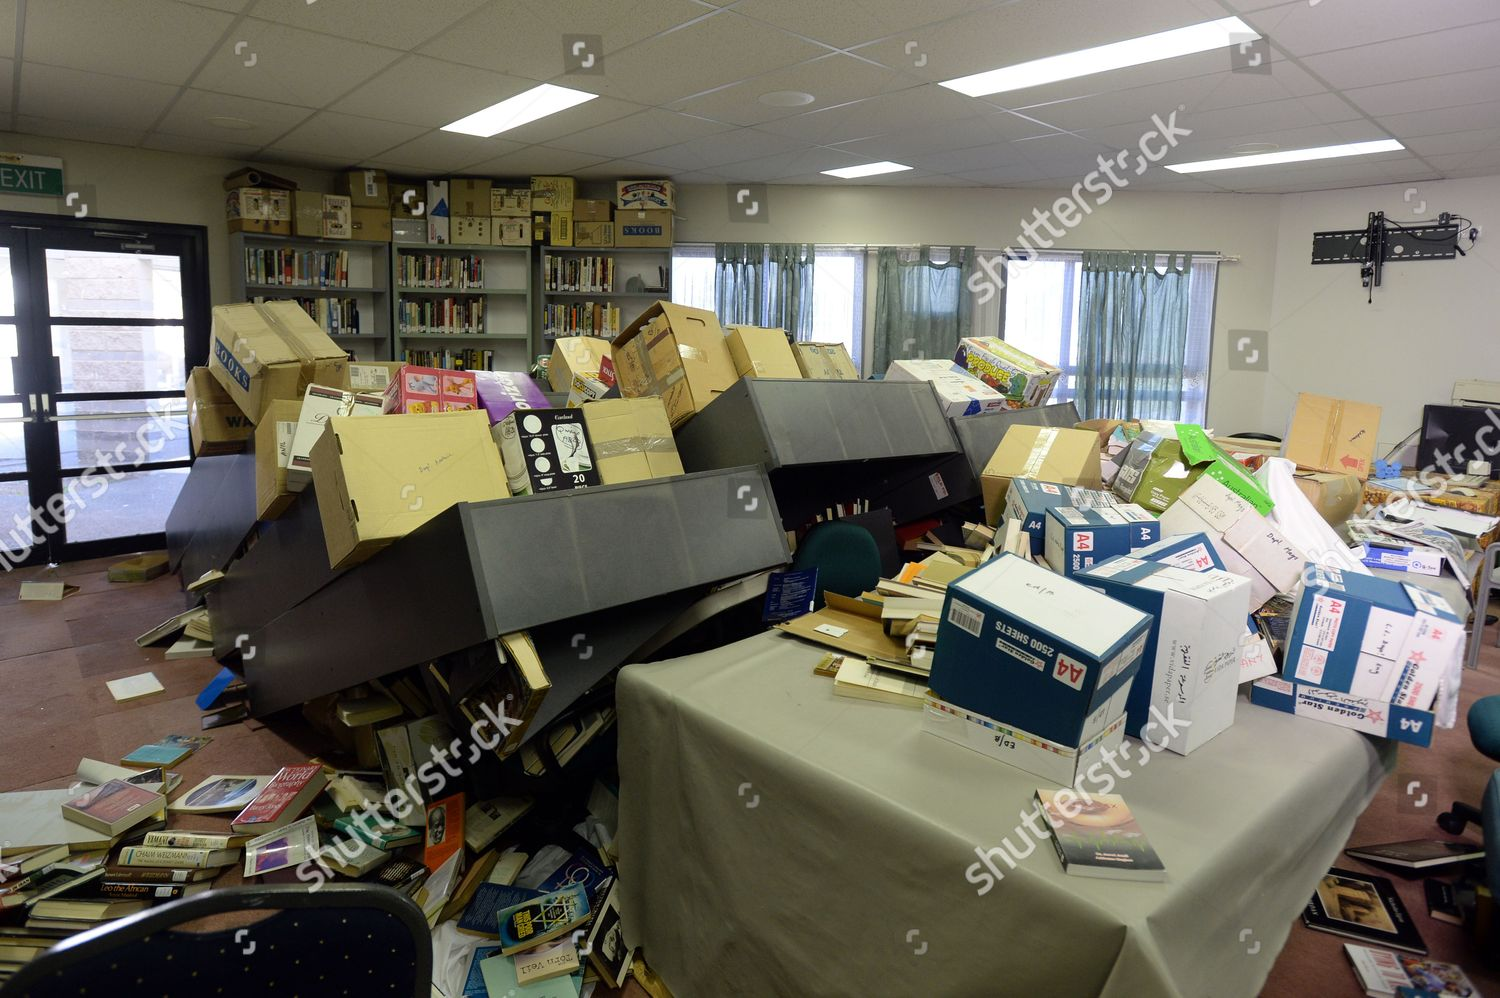 Interior View One Rooms Vandalized Library Canberra